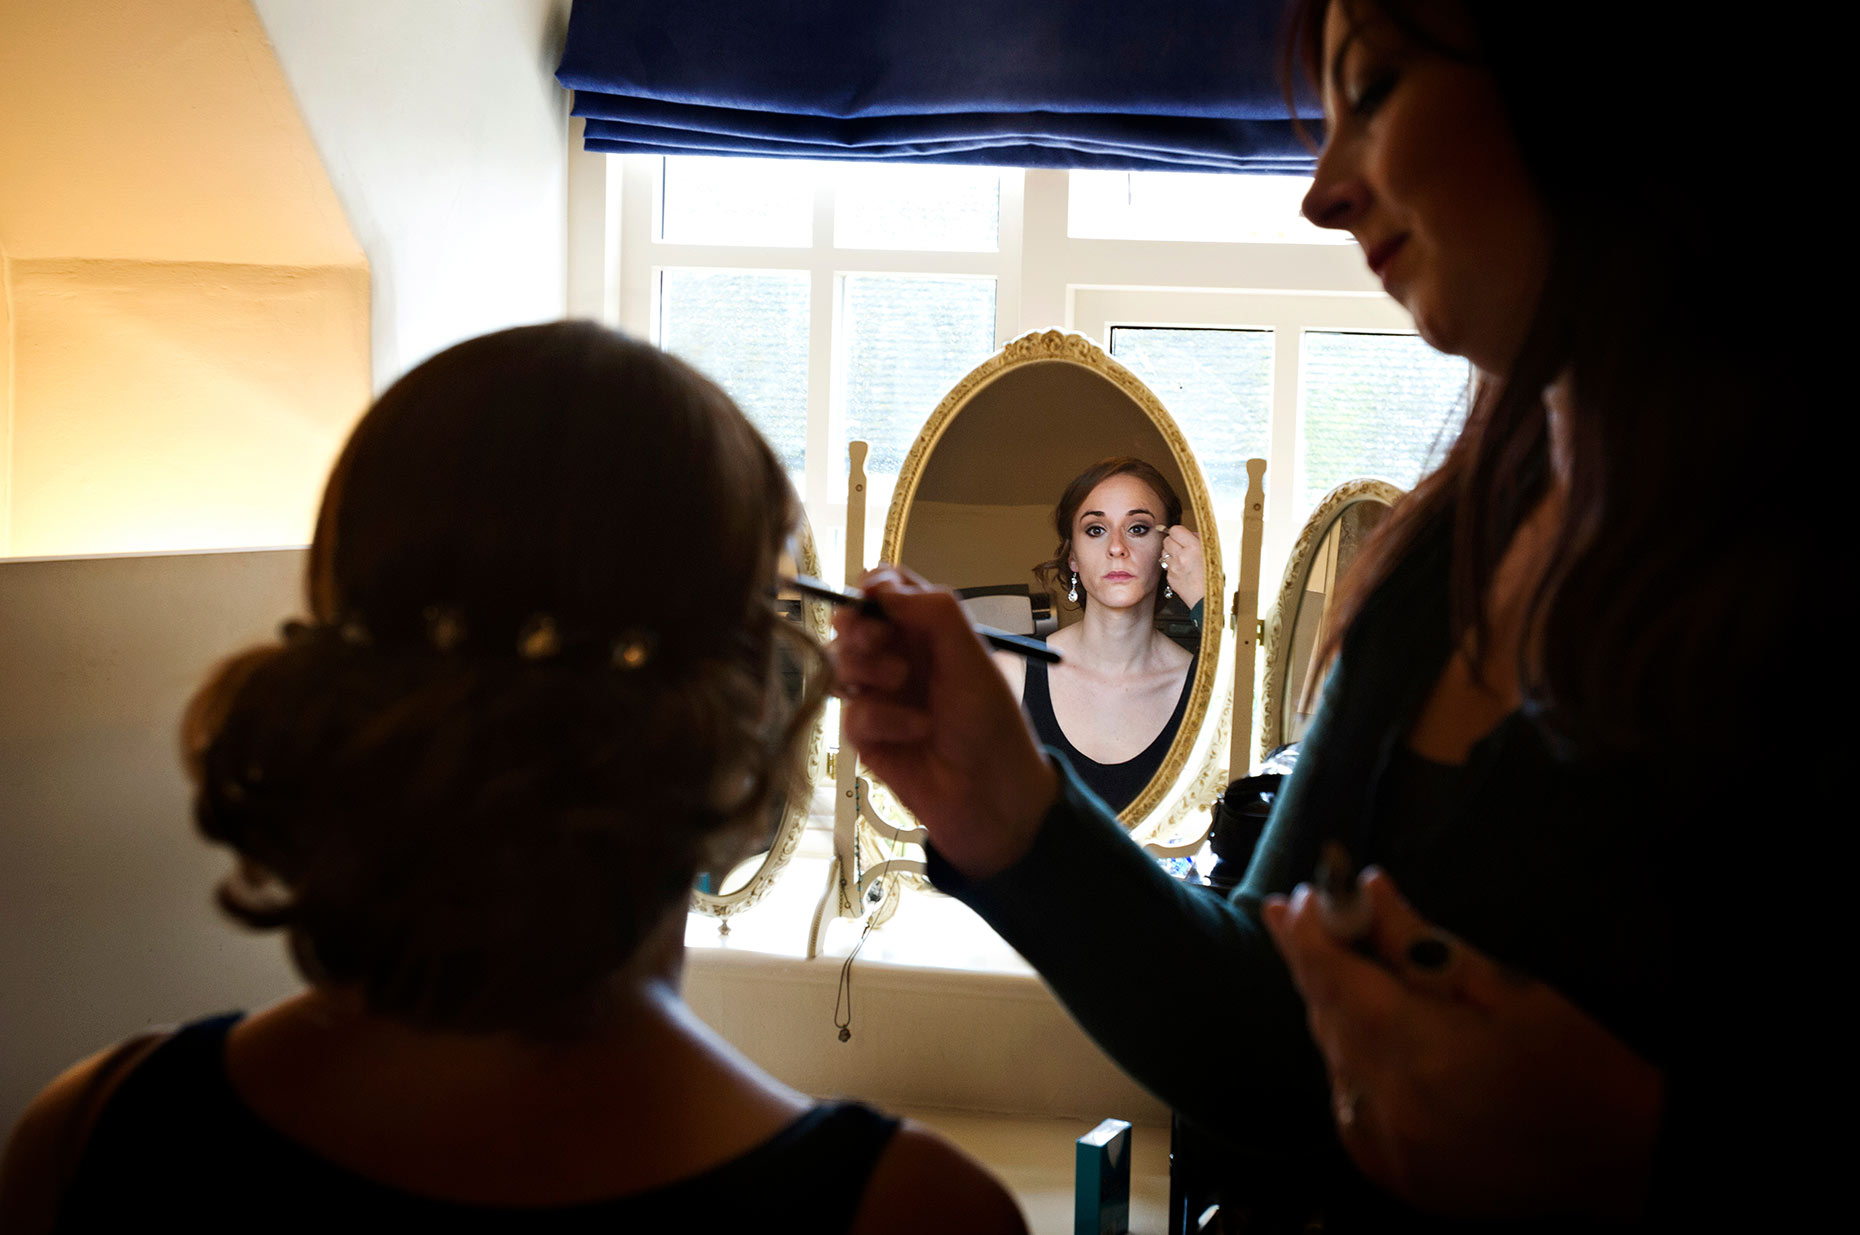 003Bride-Preparations-Hambleton-Rutland